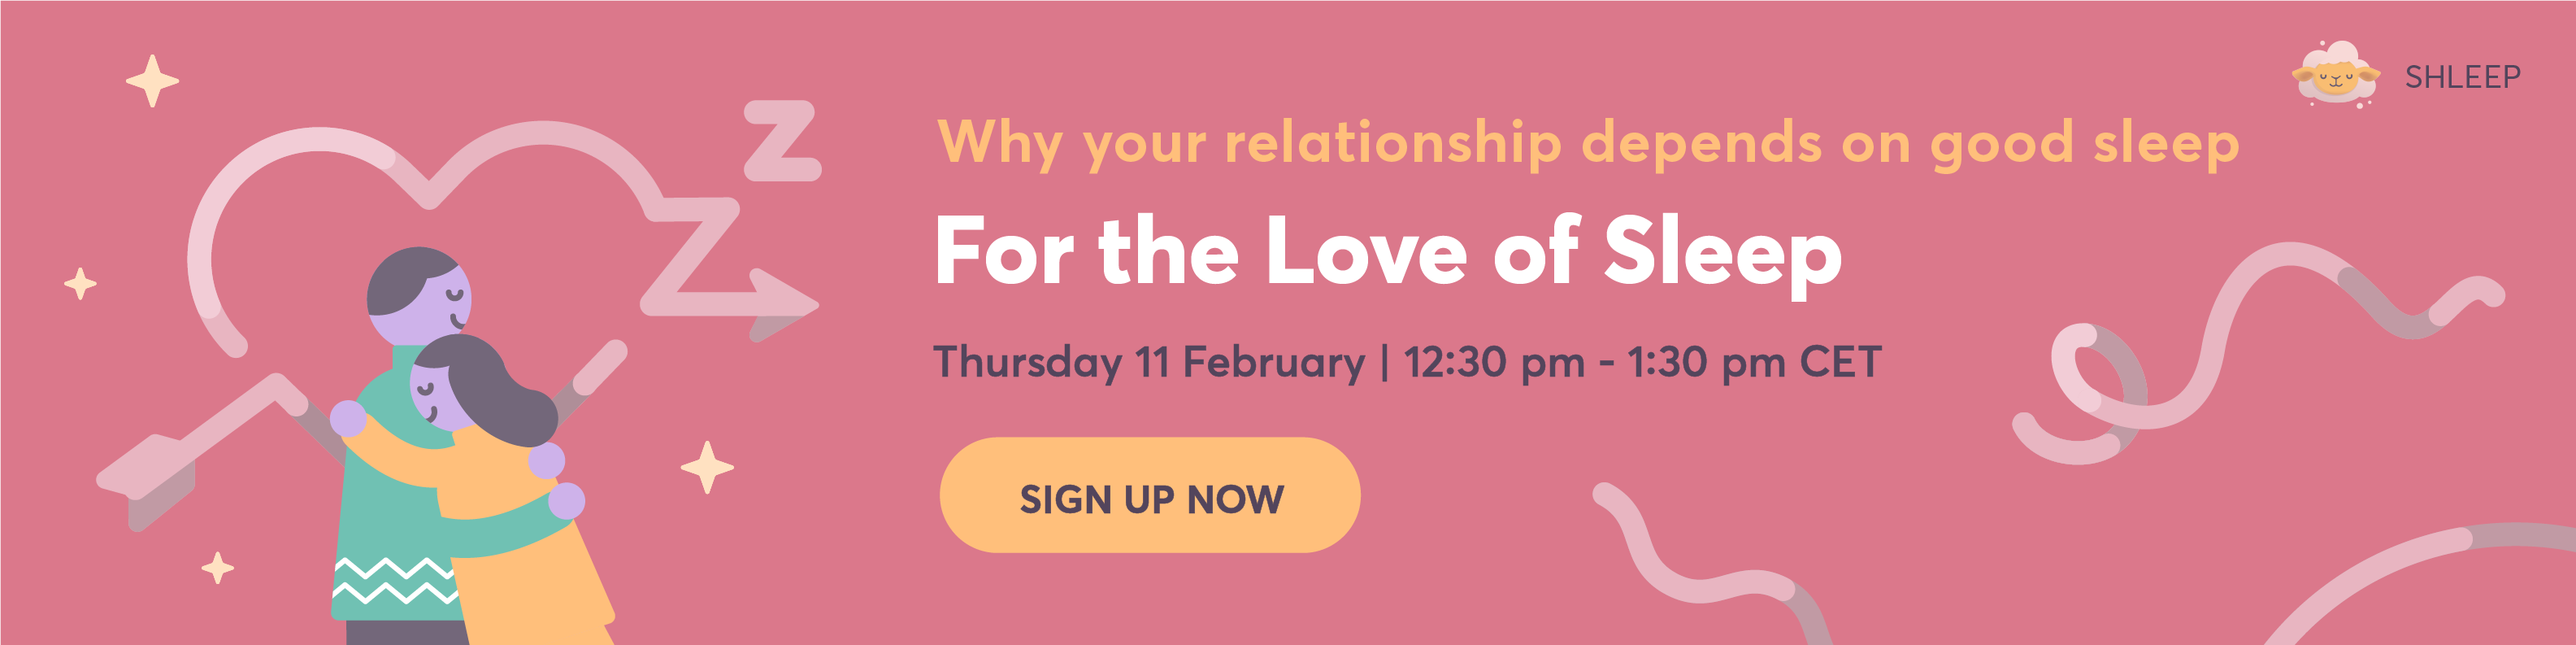 For the love of sleep webinar